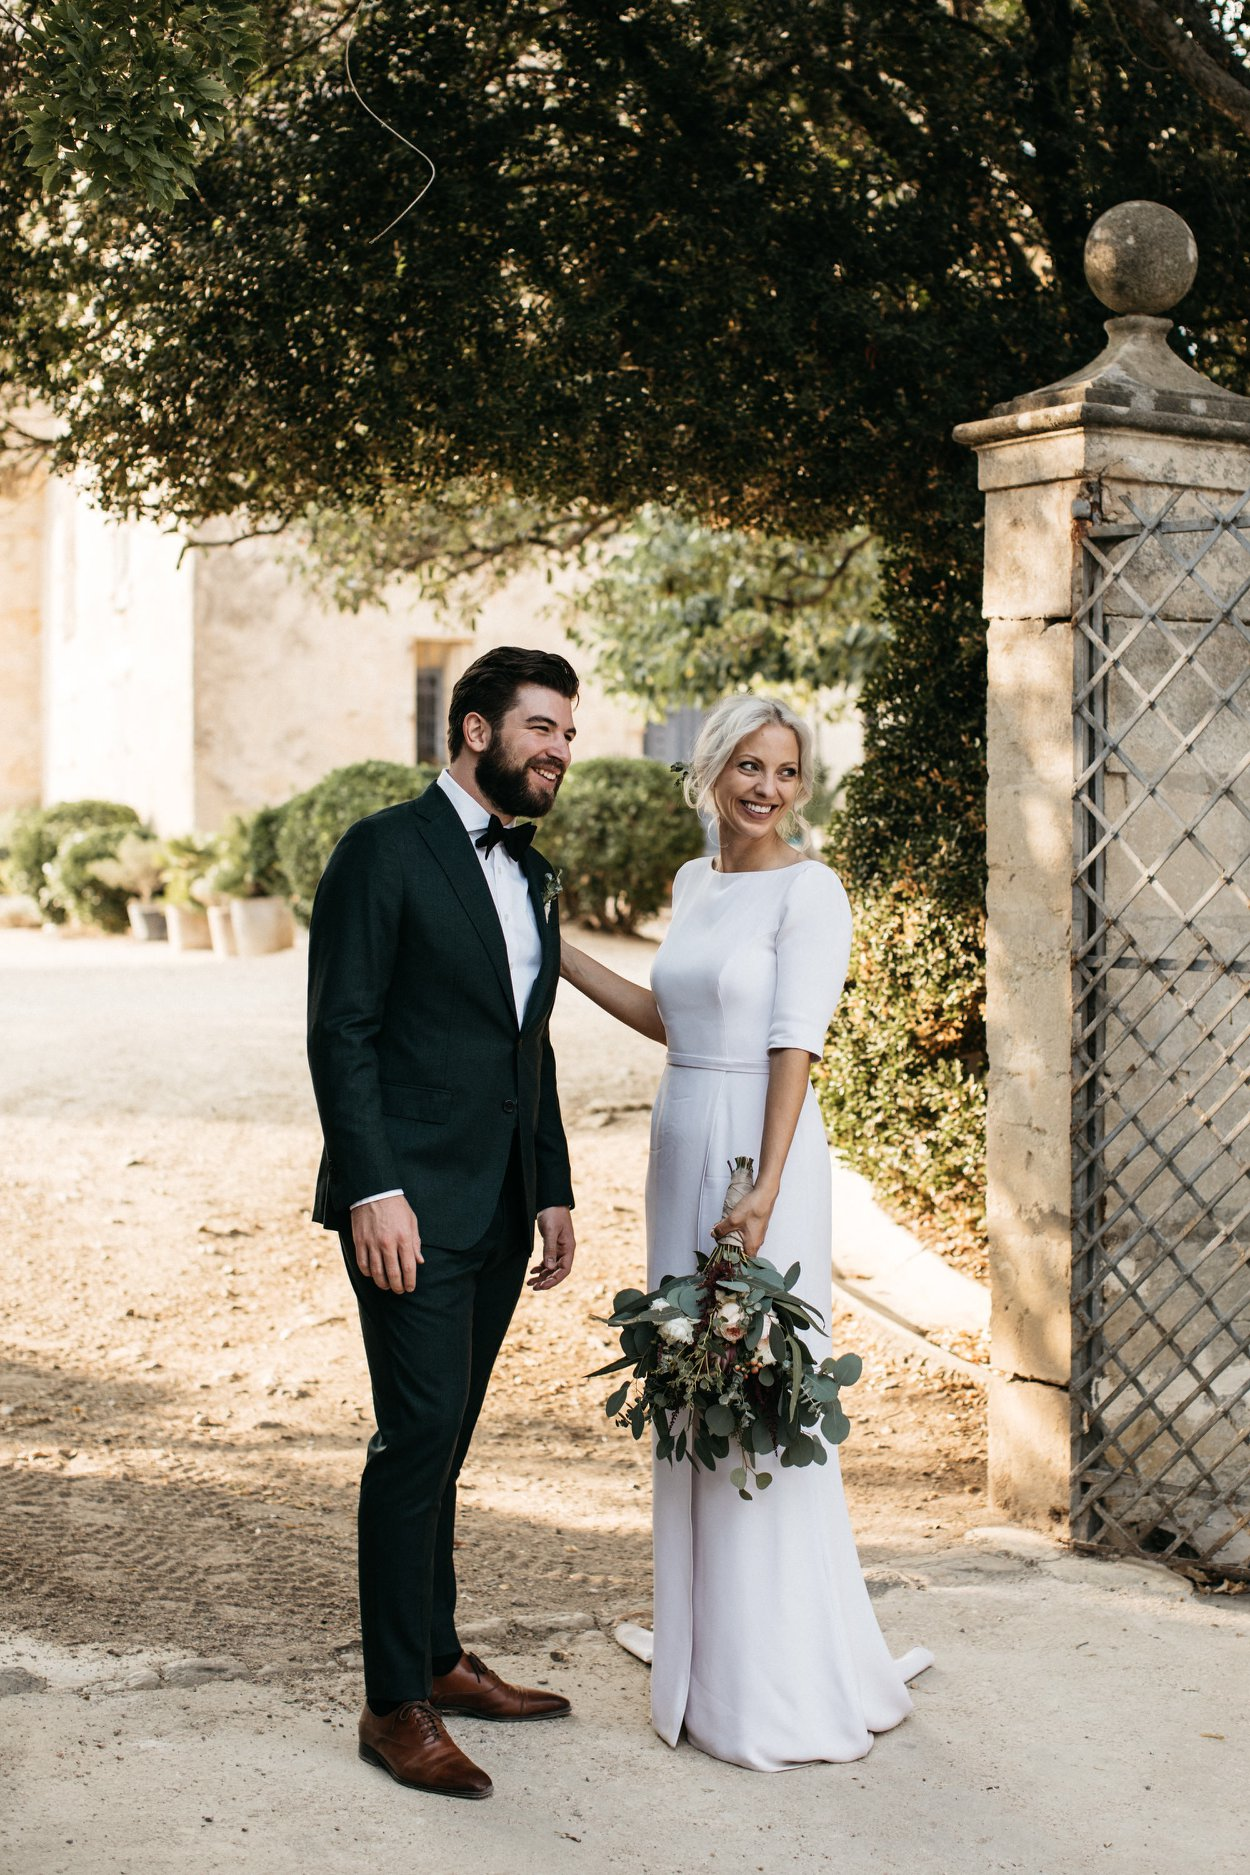 Weddings - We specialise in creating beautiful custom suiting for entire wedding parties. We can guide you expertly through the process, helping to design the perfect wedding suit for your event, whether it be a black tie affair, or a casual beachside wedding.